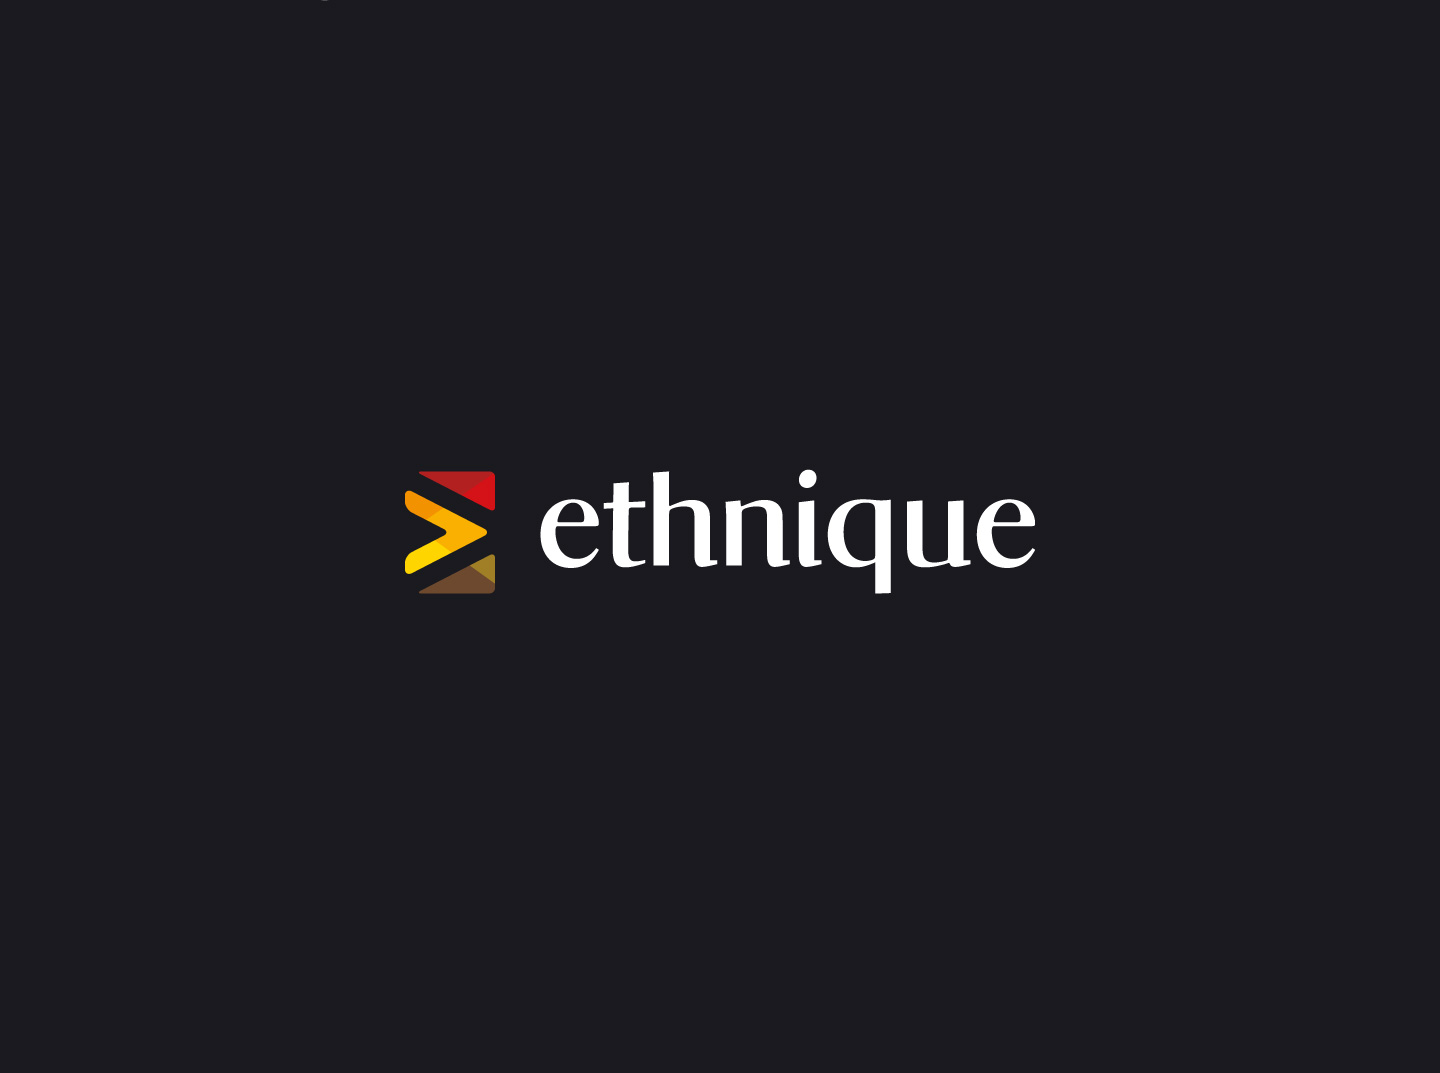 Ethnique: Visual Identity